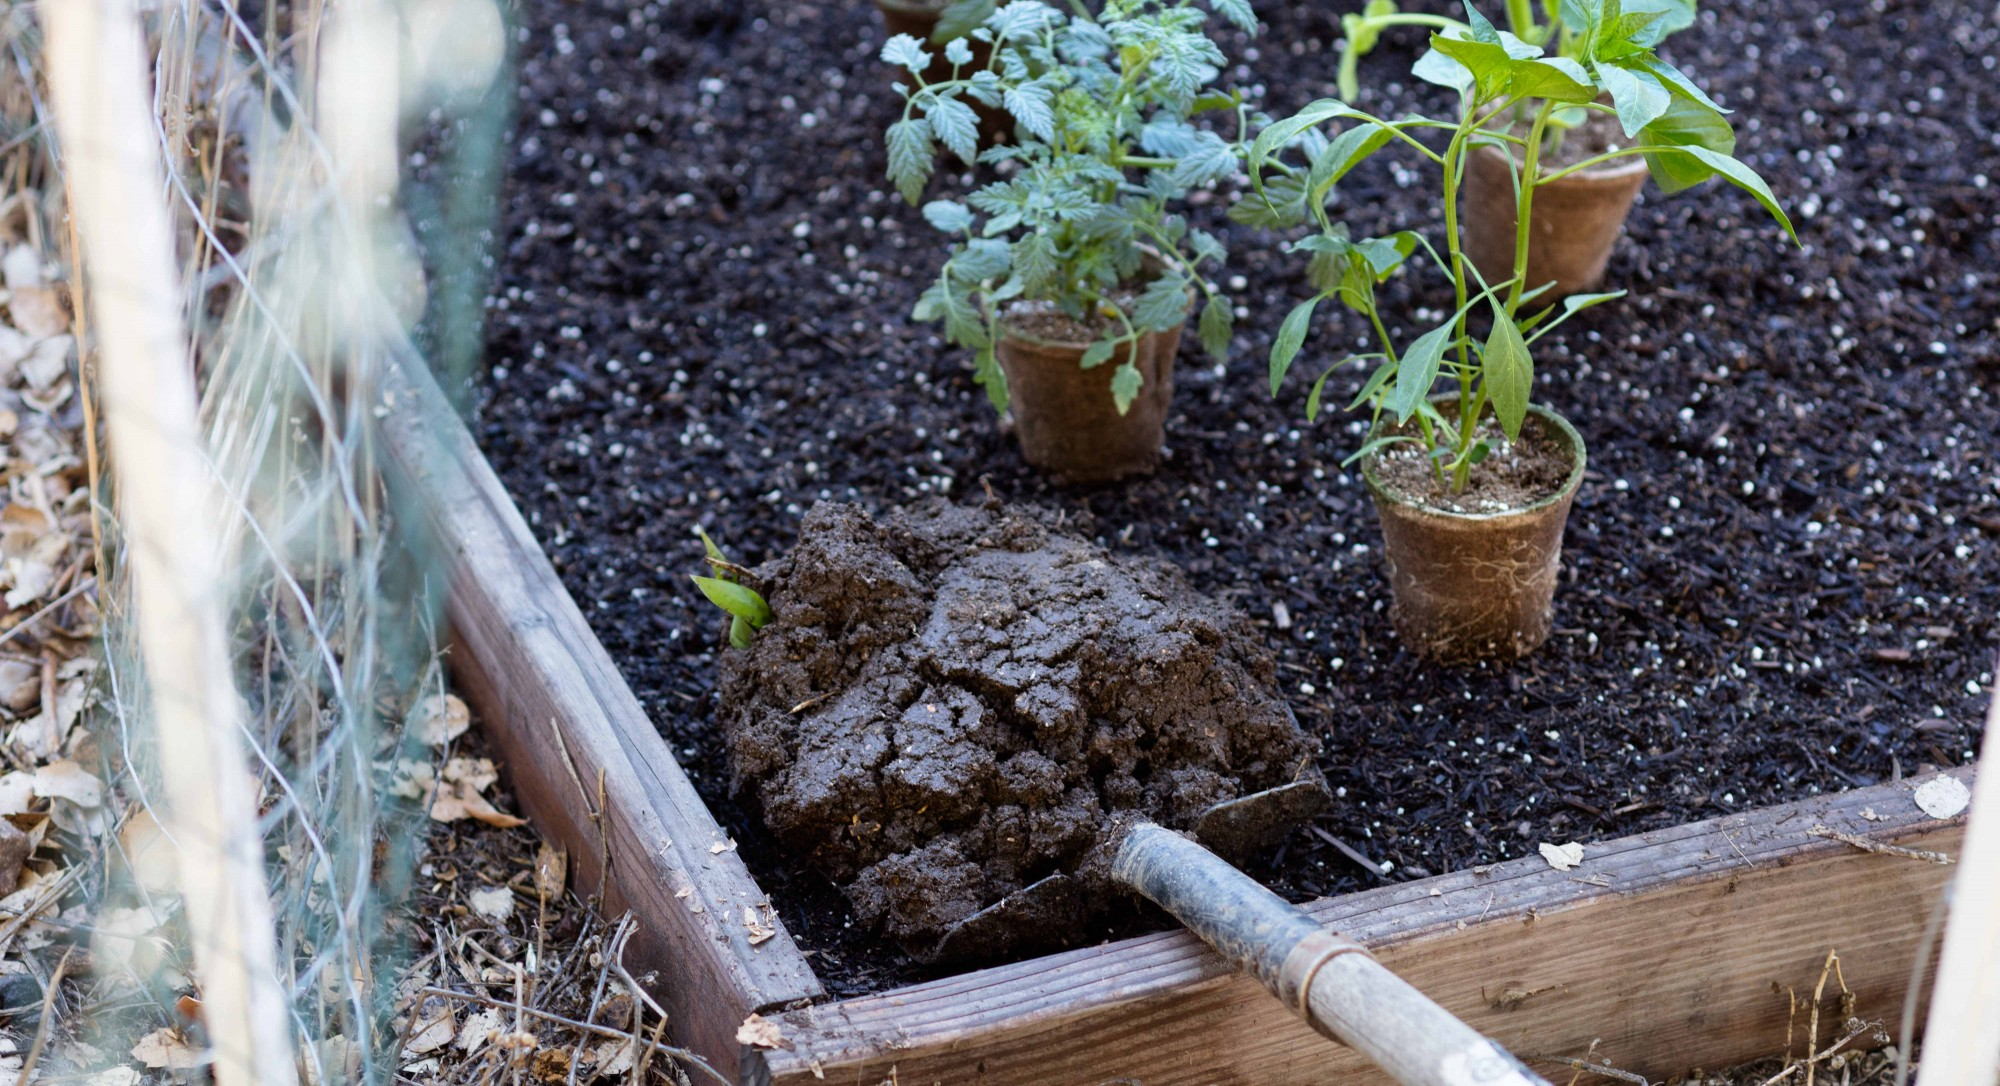 How to Compost at Home